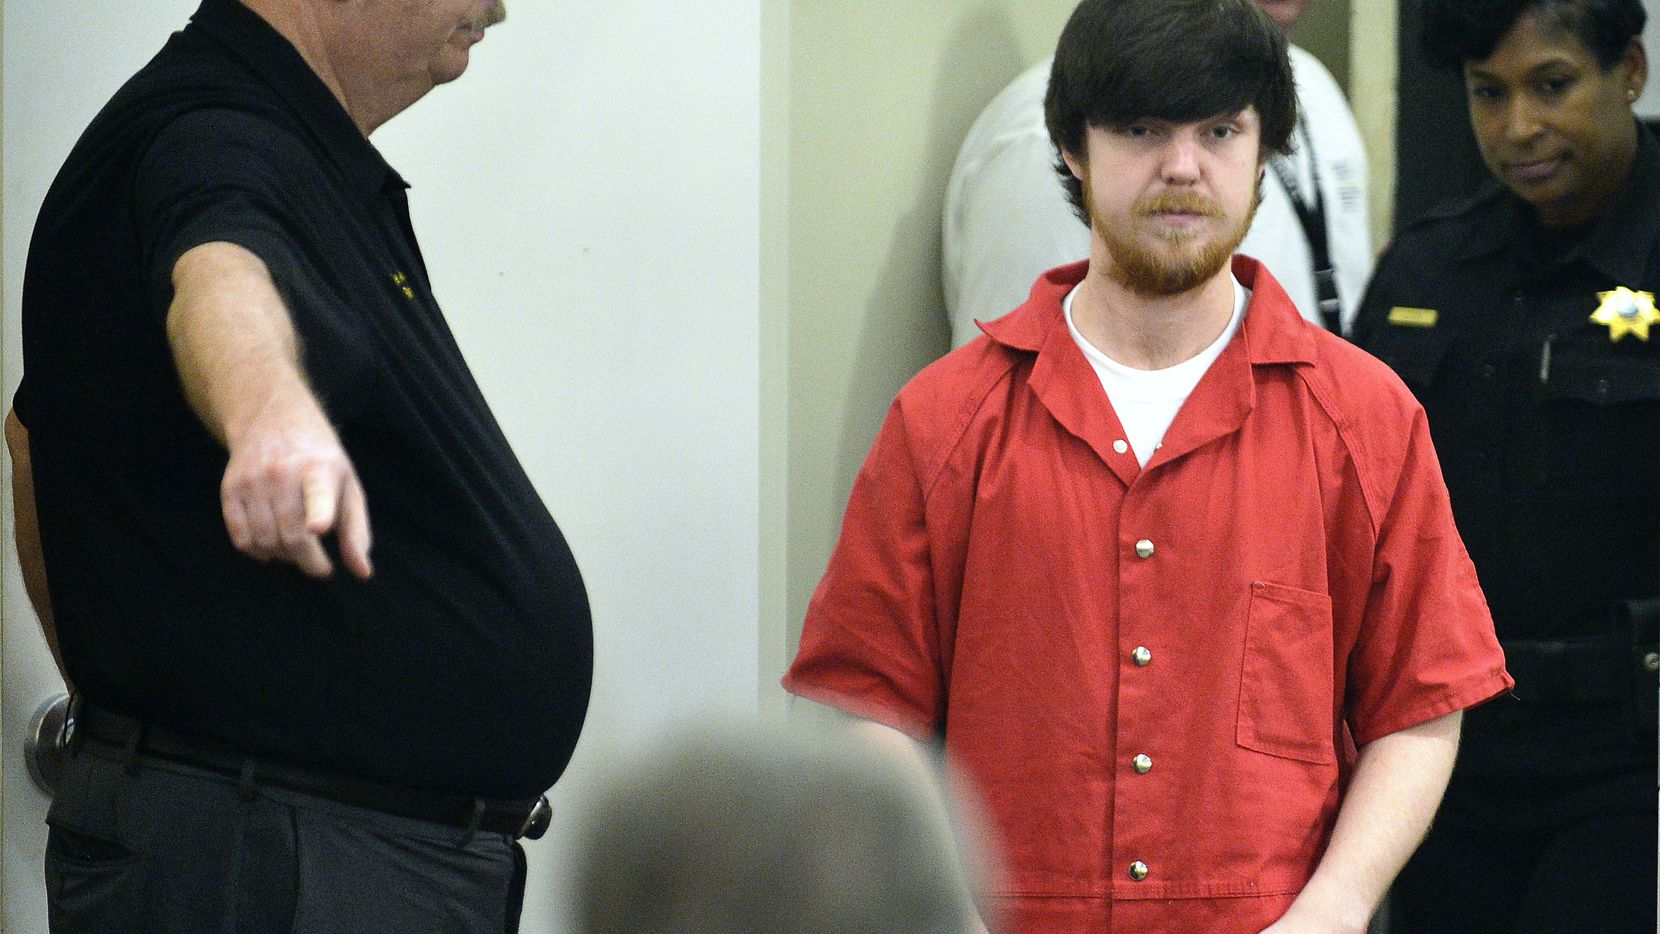 Ethan Couch is brought into Judge Wayne Salvant's court for a hearing at the Tim Curry Justice Center in Fort Worth on April 13, 2016.